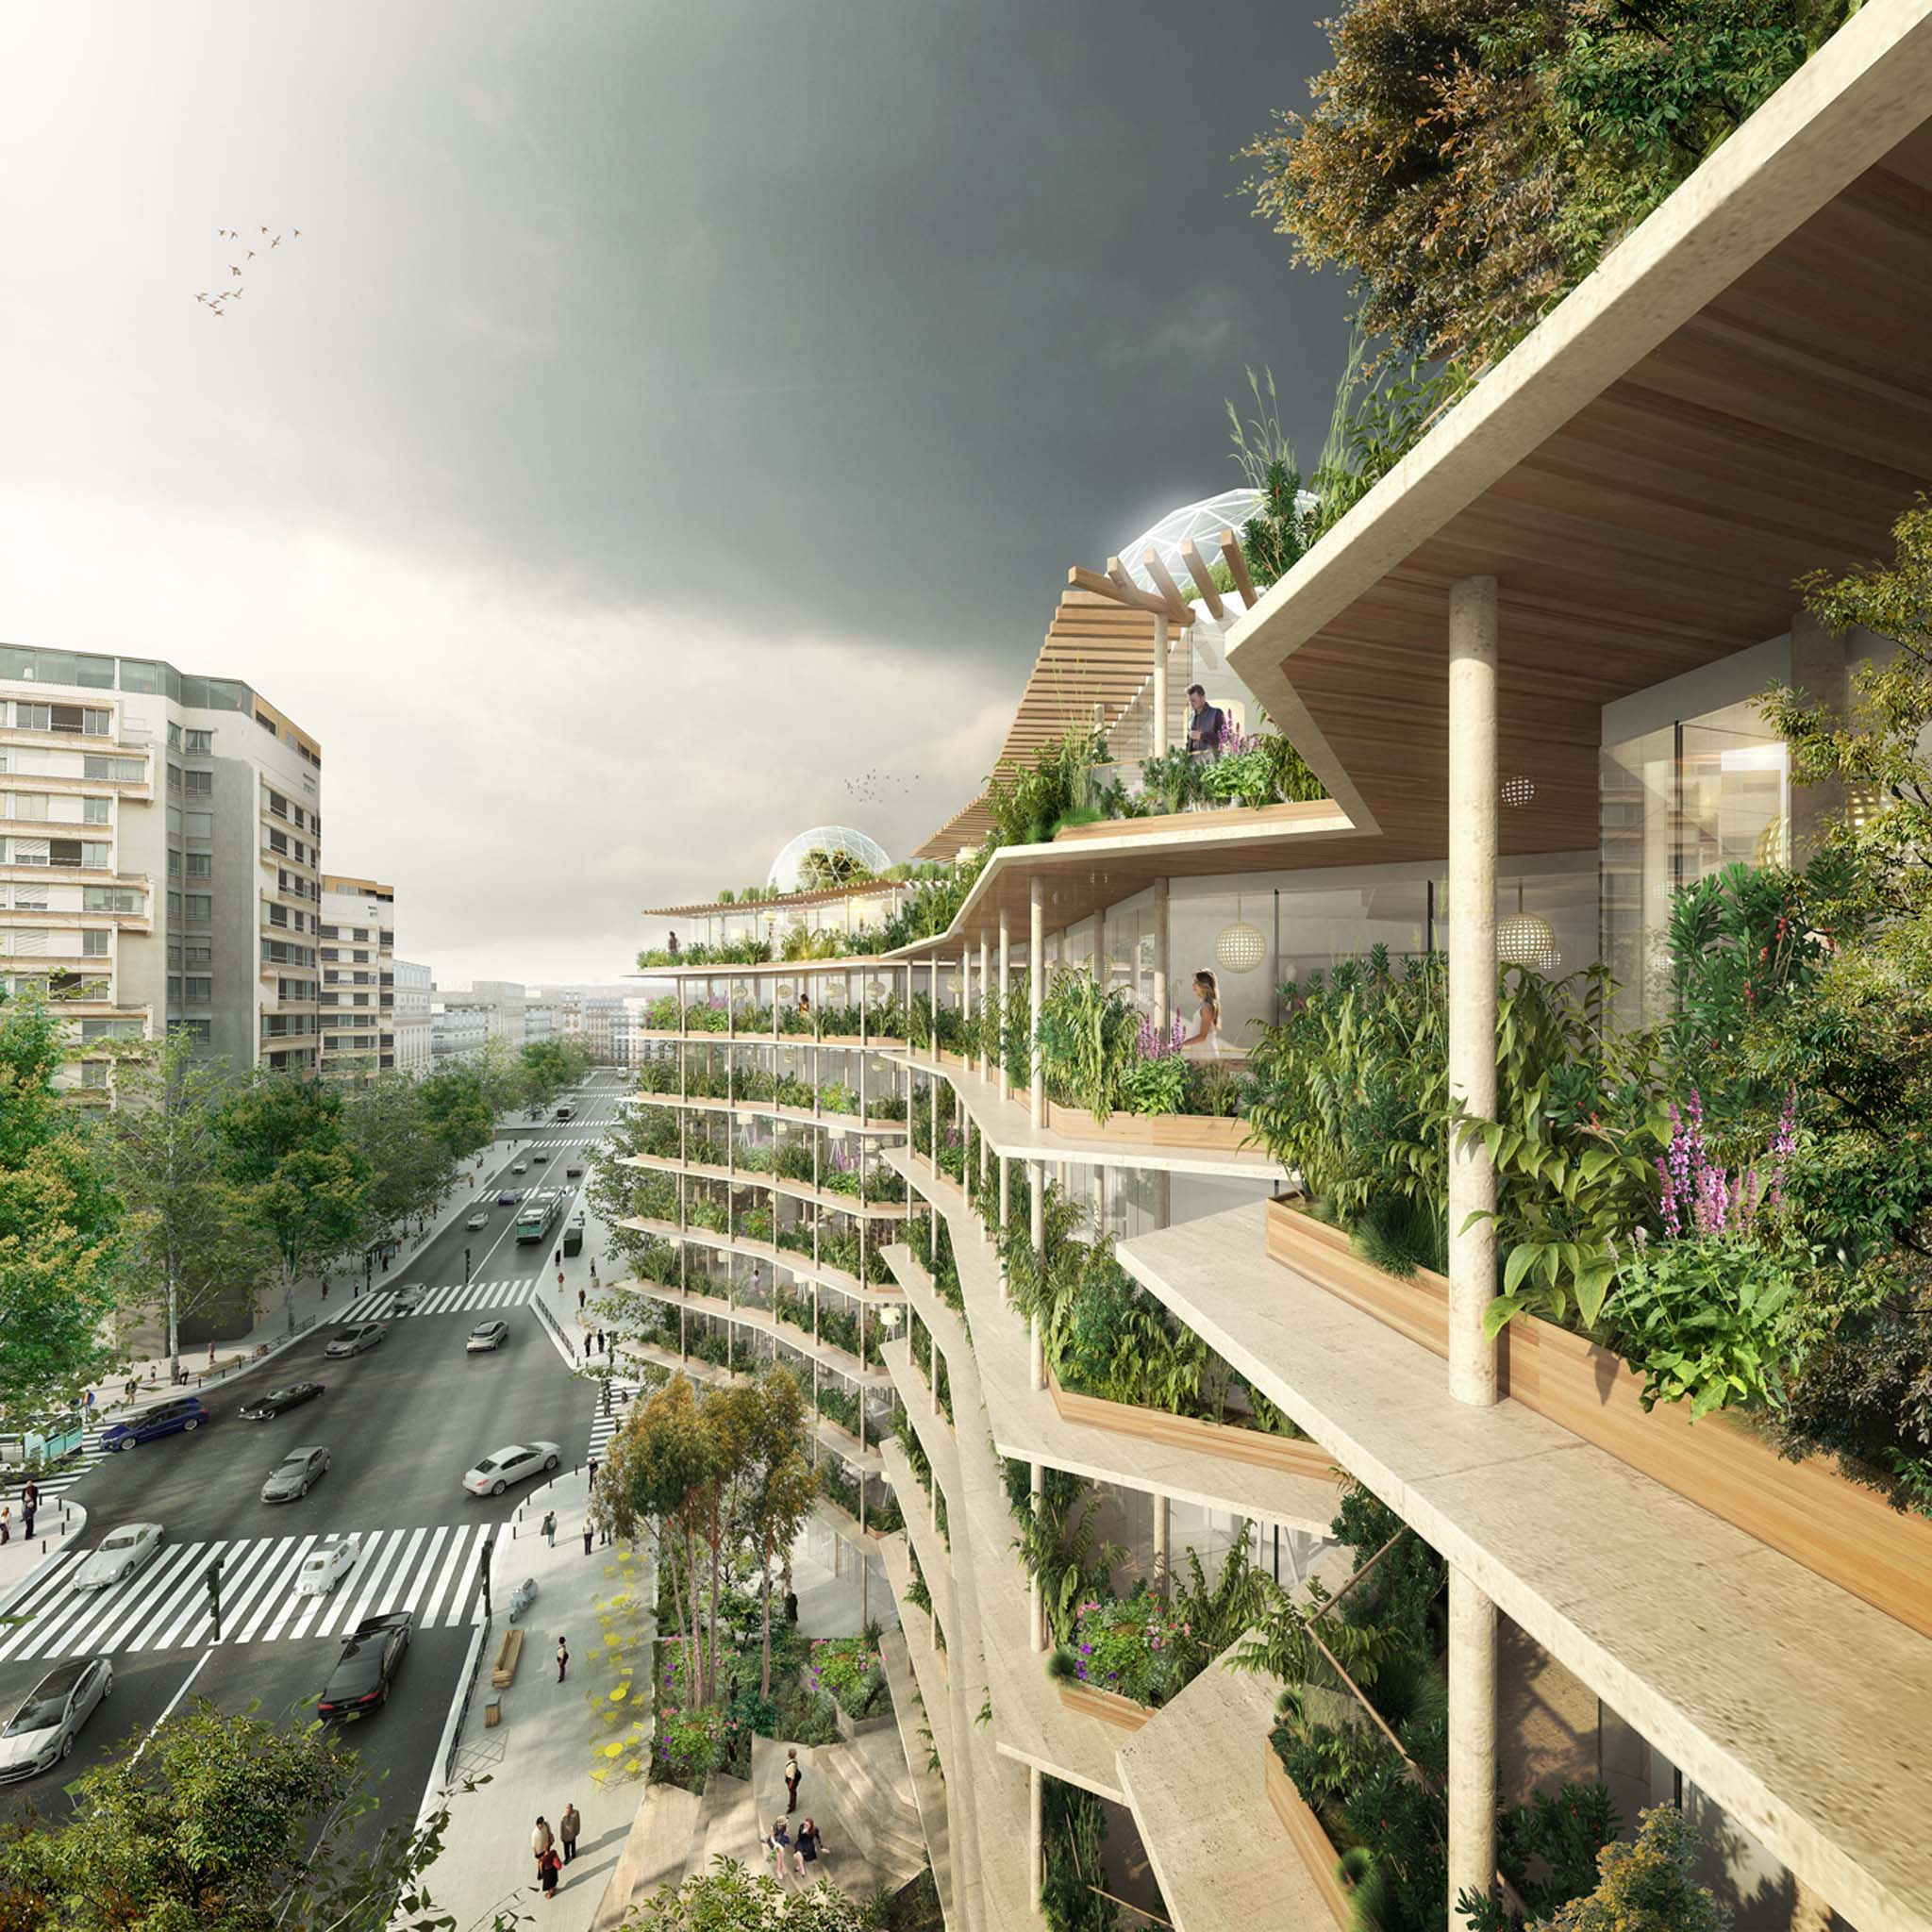 R inventer paris pas un radis mais des potagers au kilom tre for Architecture de jardin